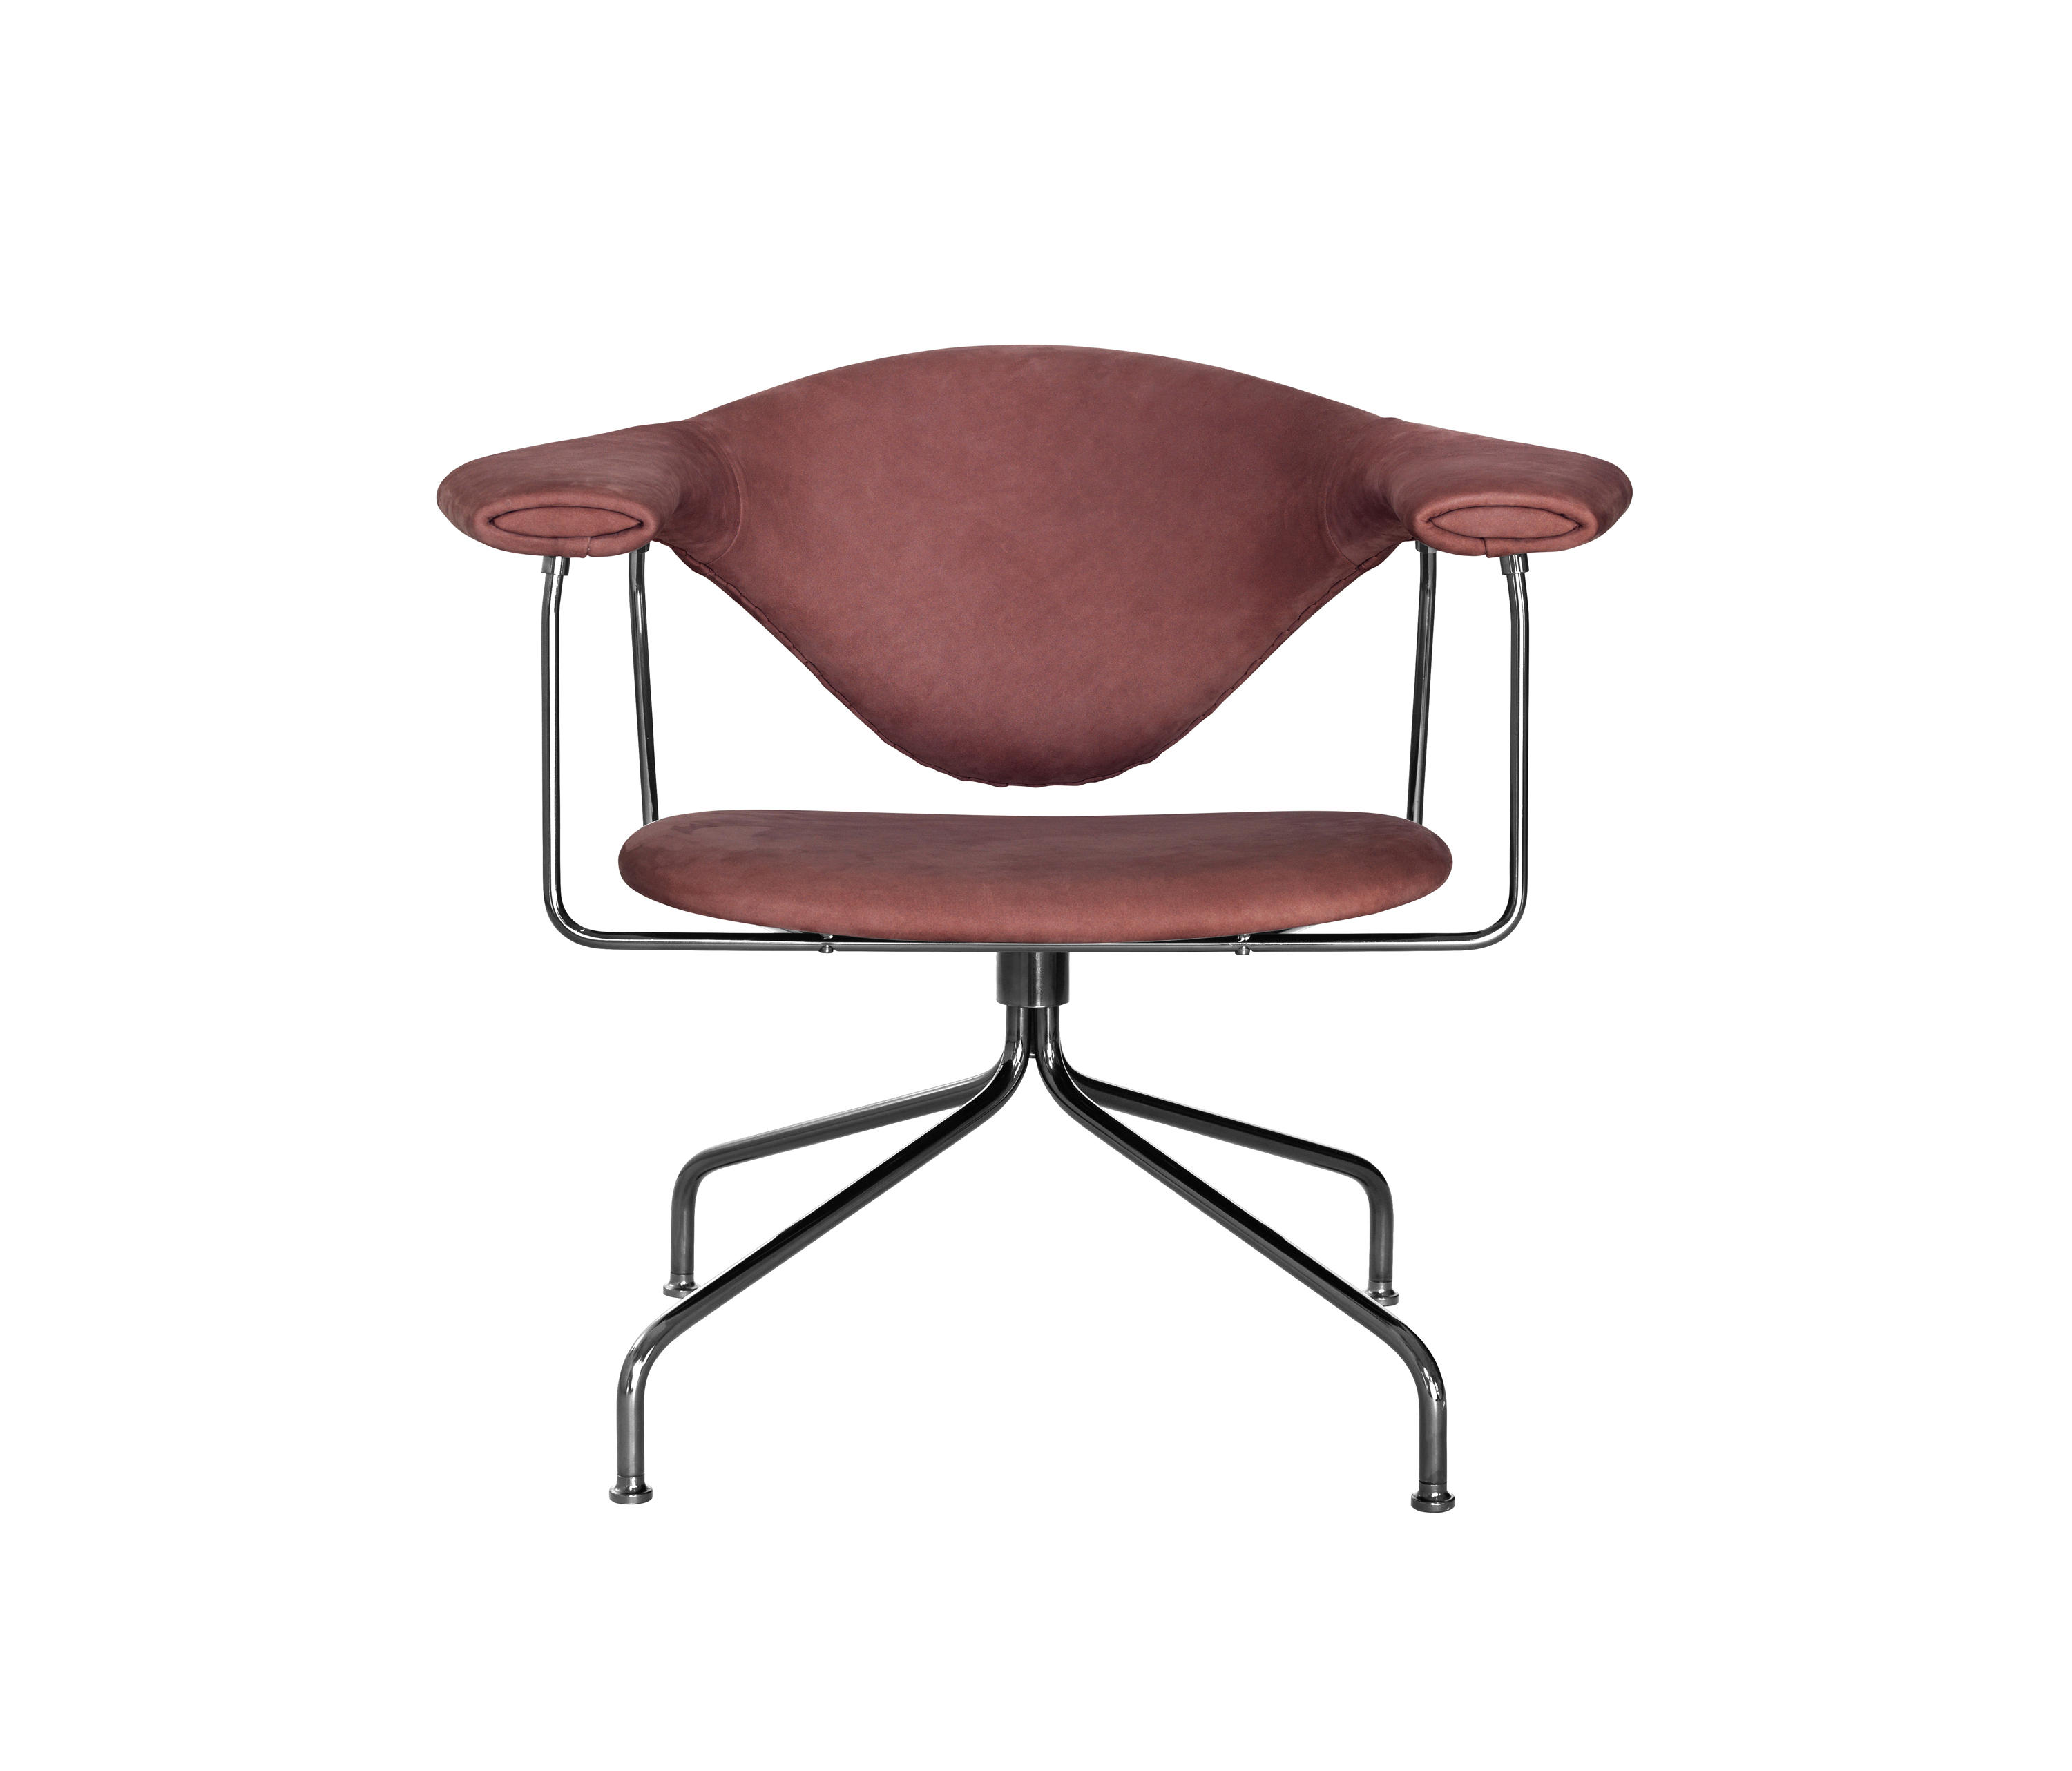 Masculo Swivel Lounge Chair Armchairs From Gubi Architonic